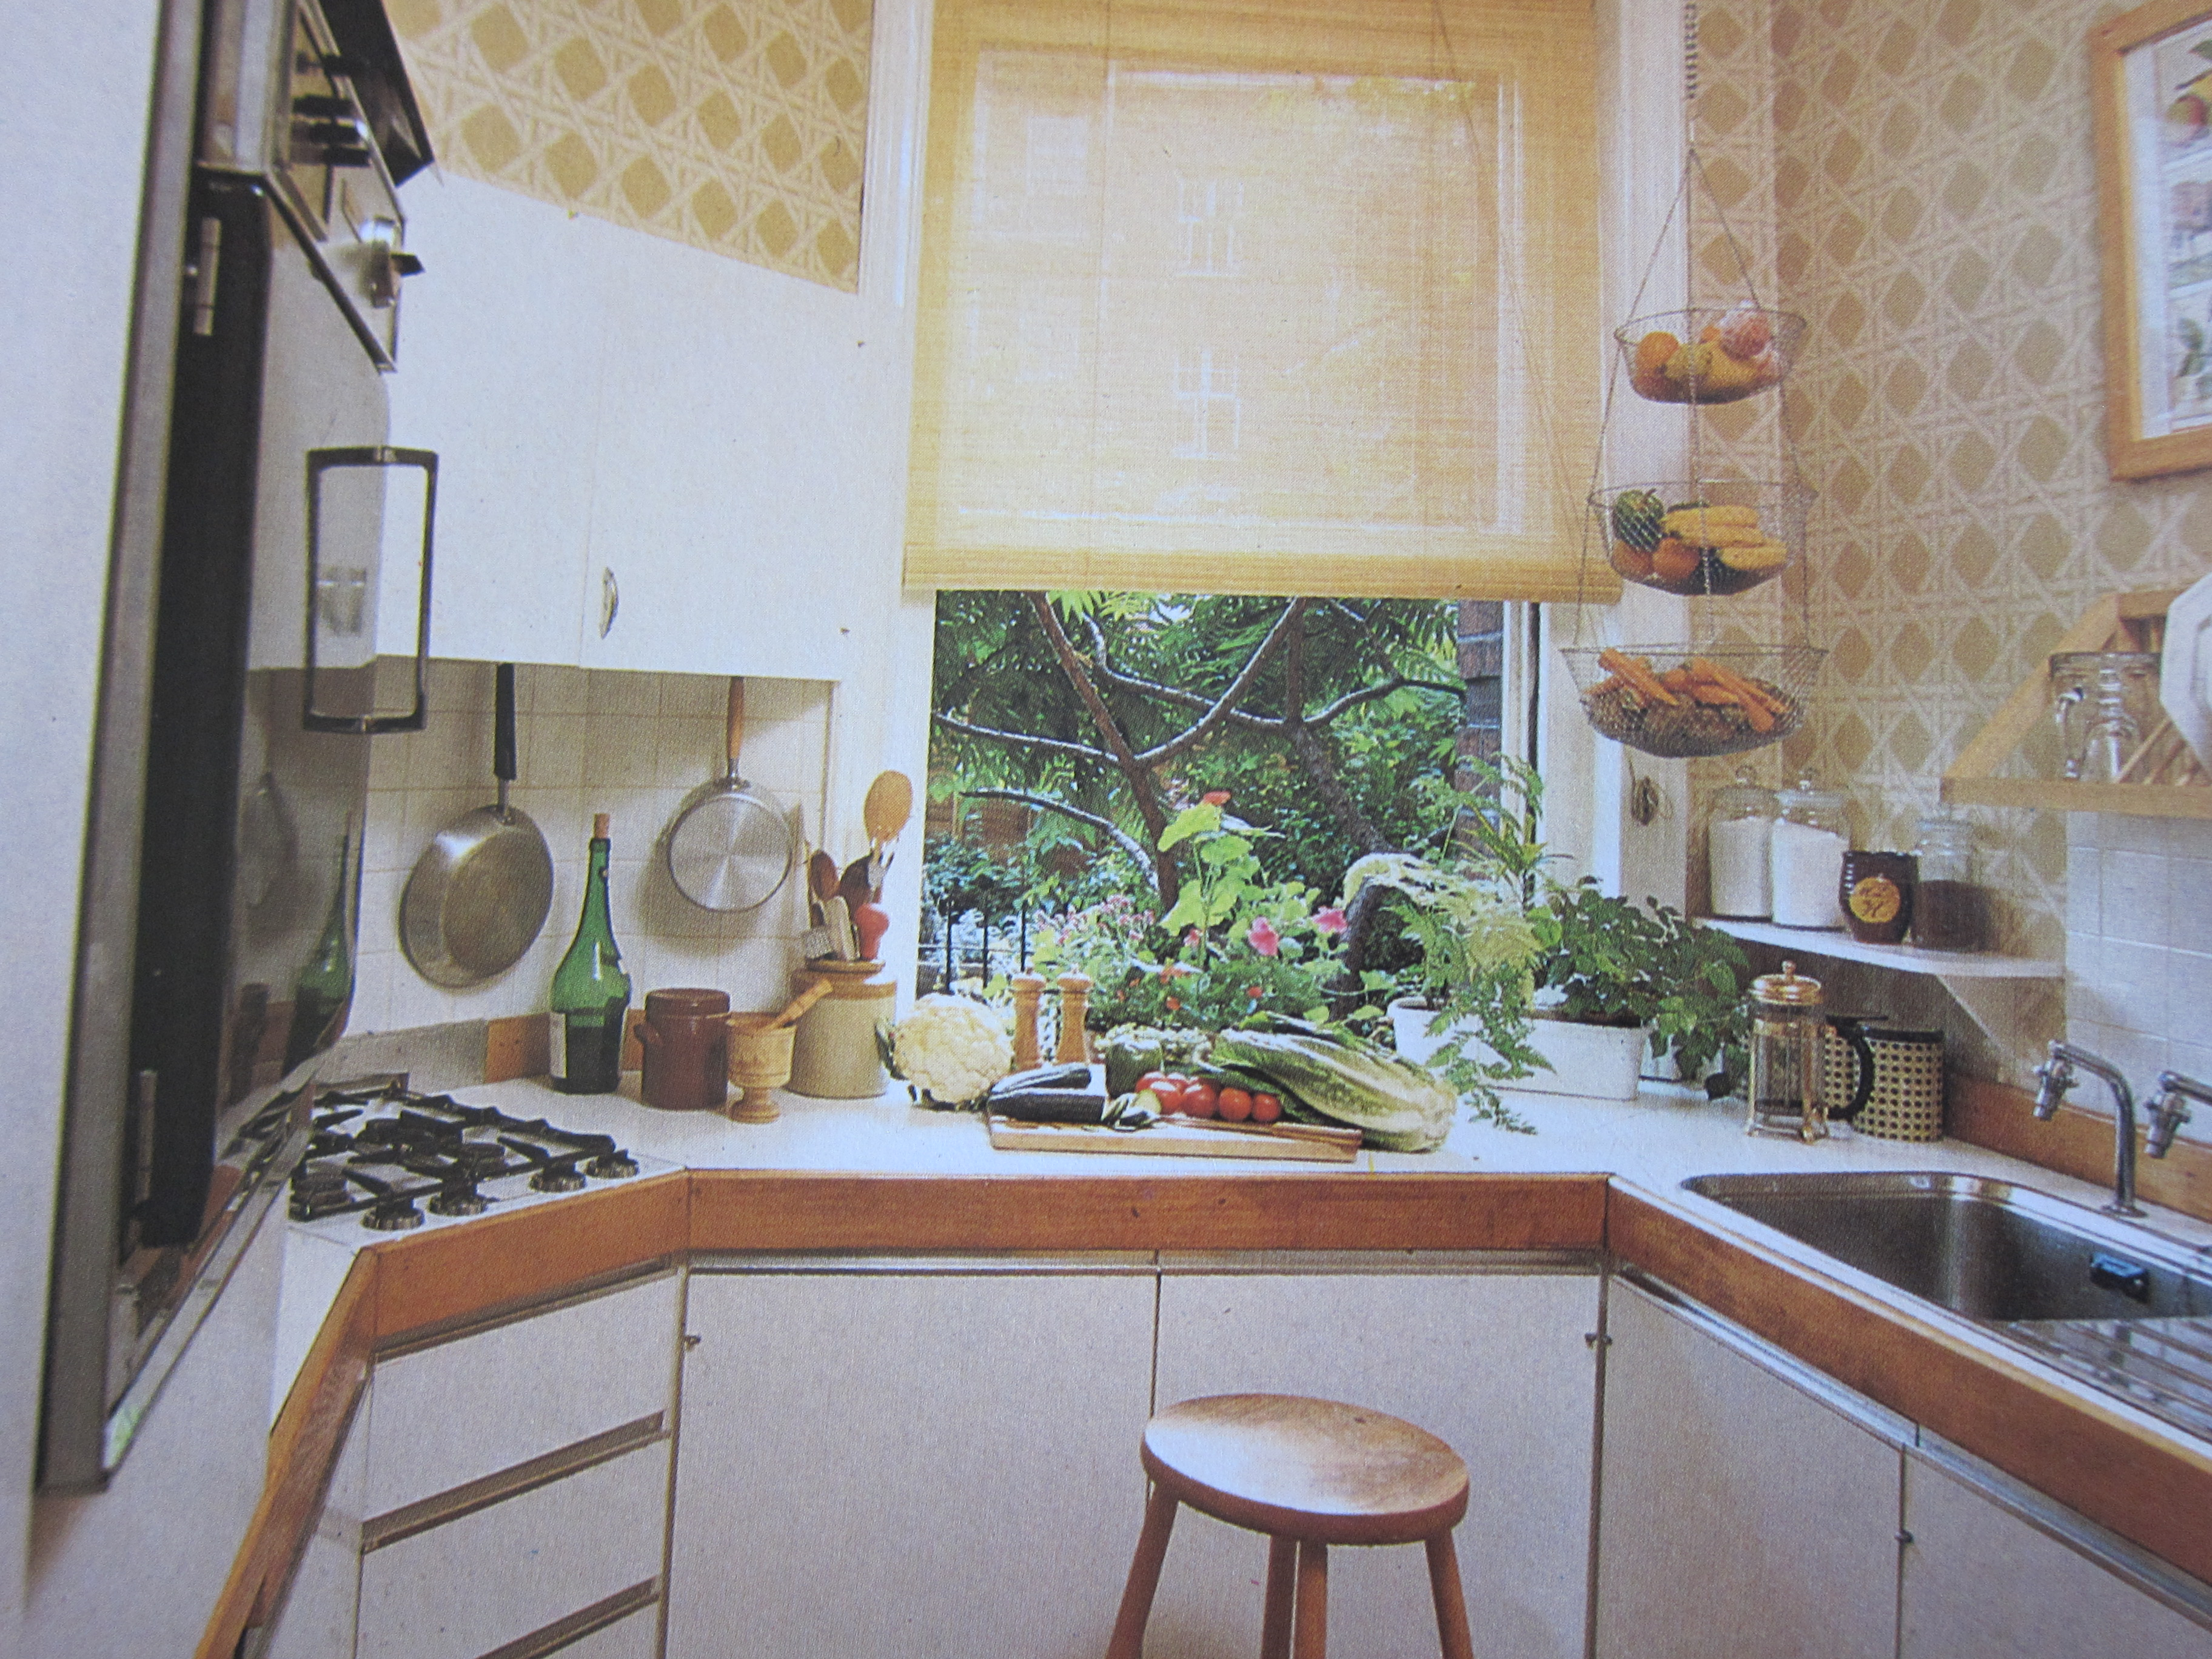 1980s kitchen